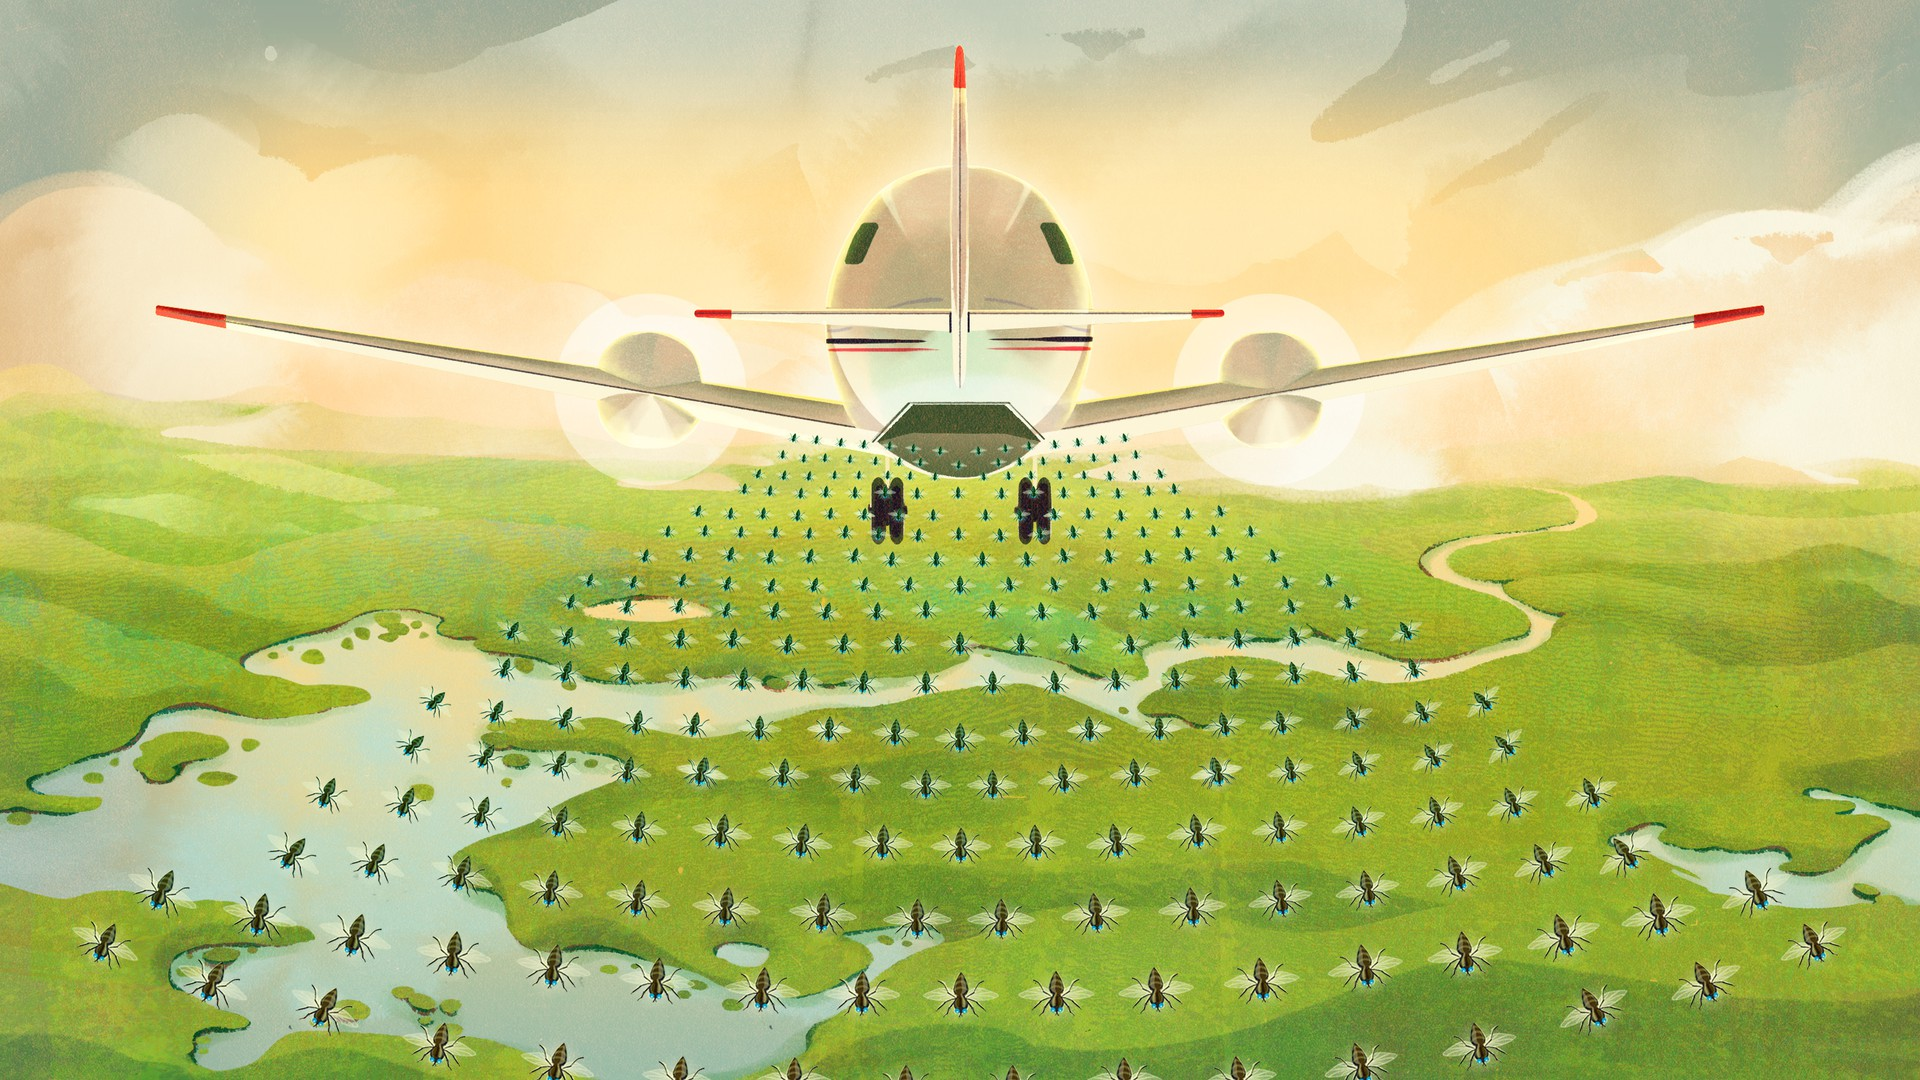 illustration of an airplane dropping insects